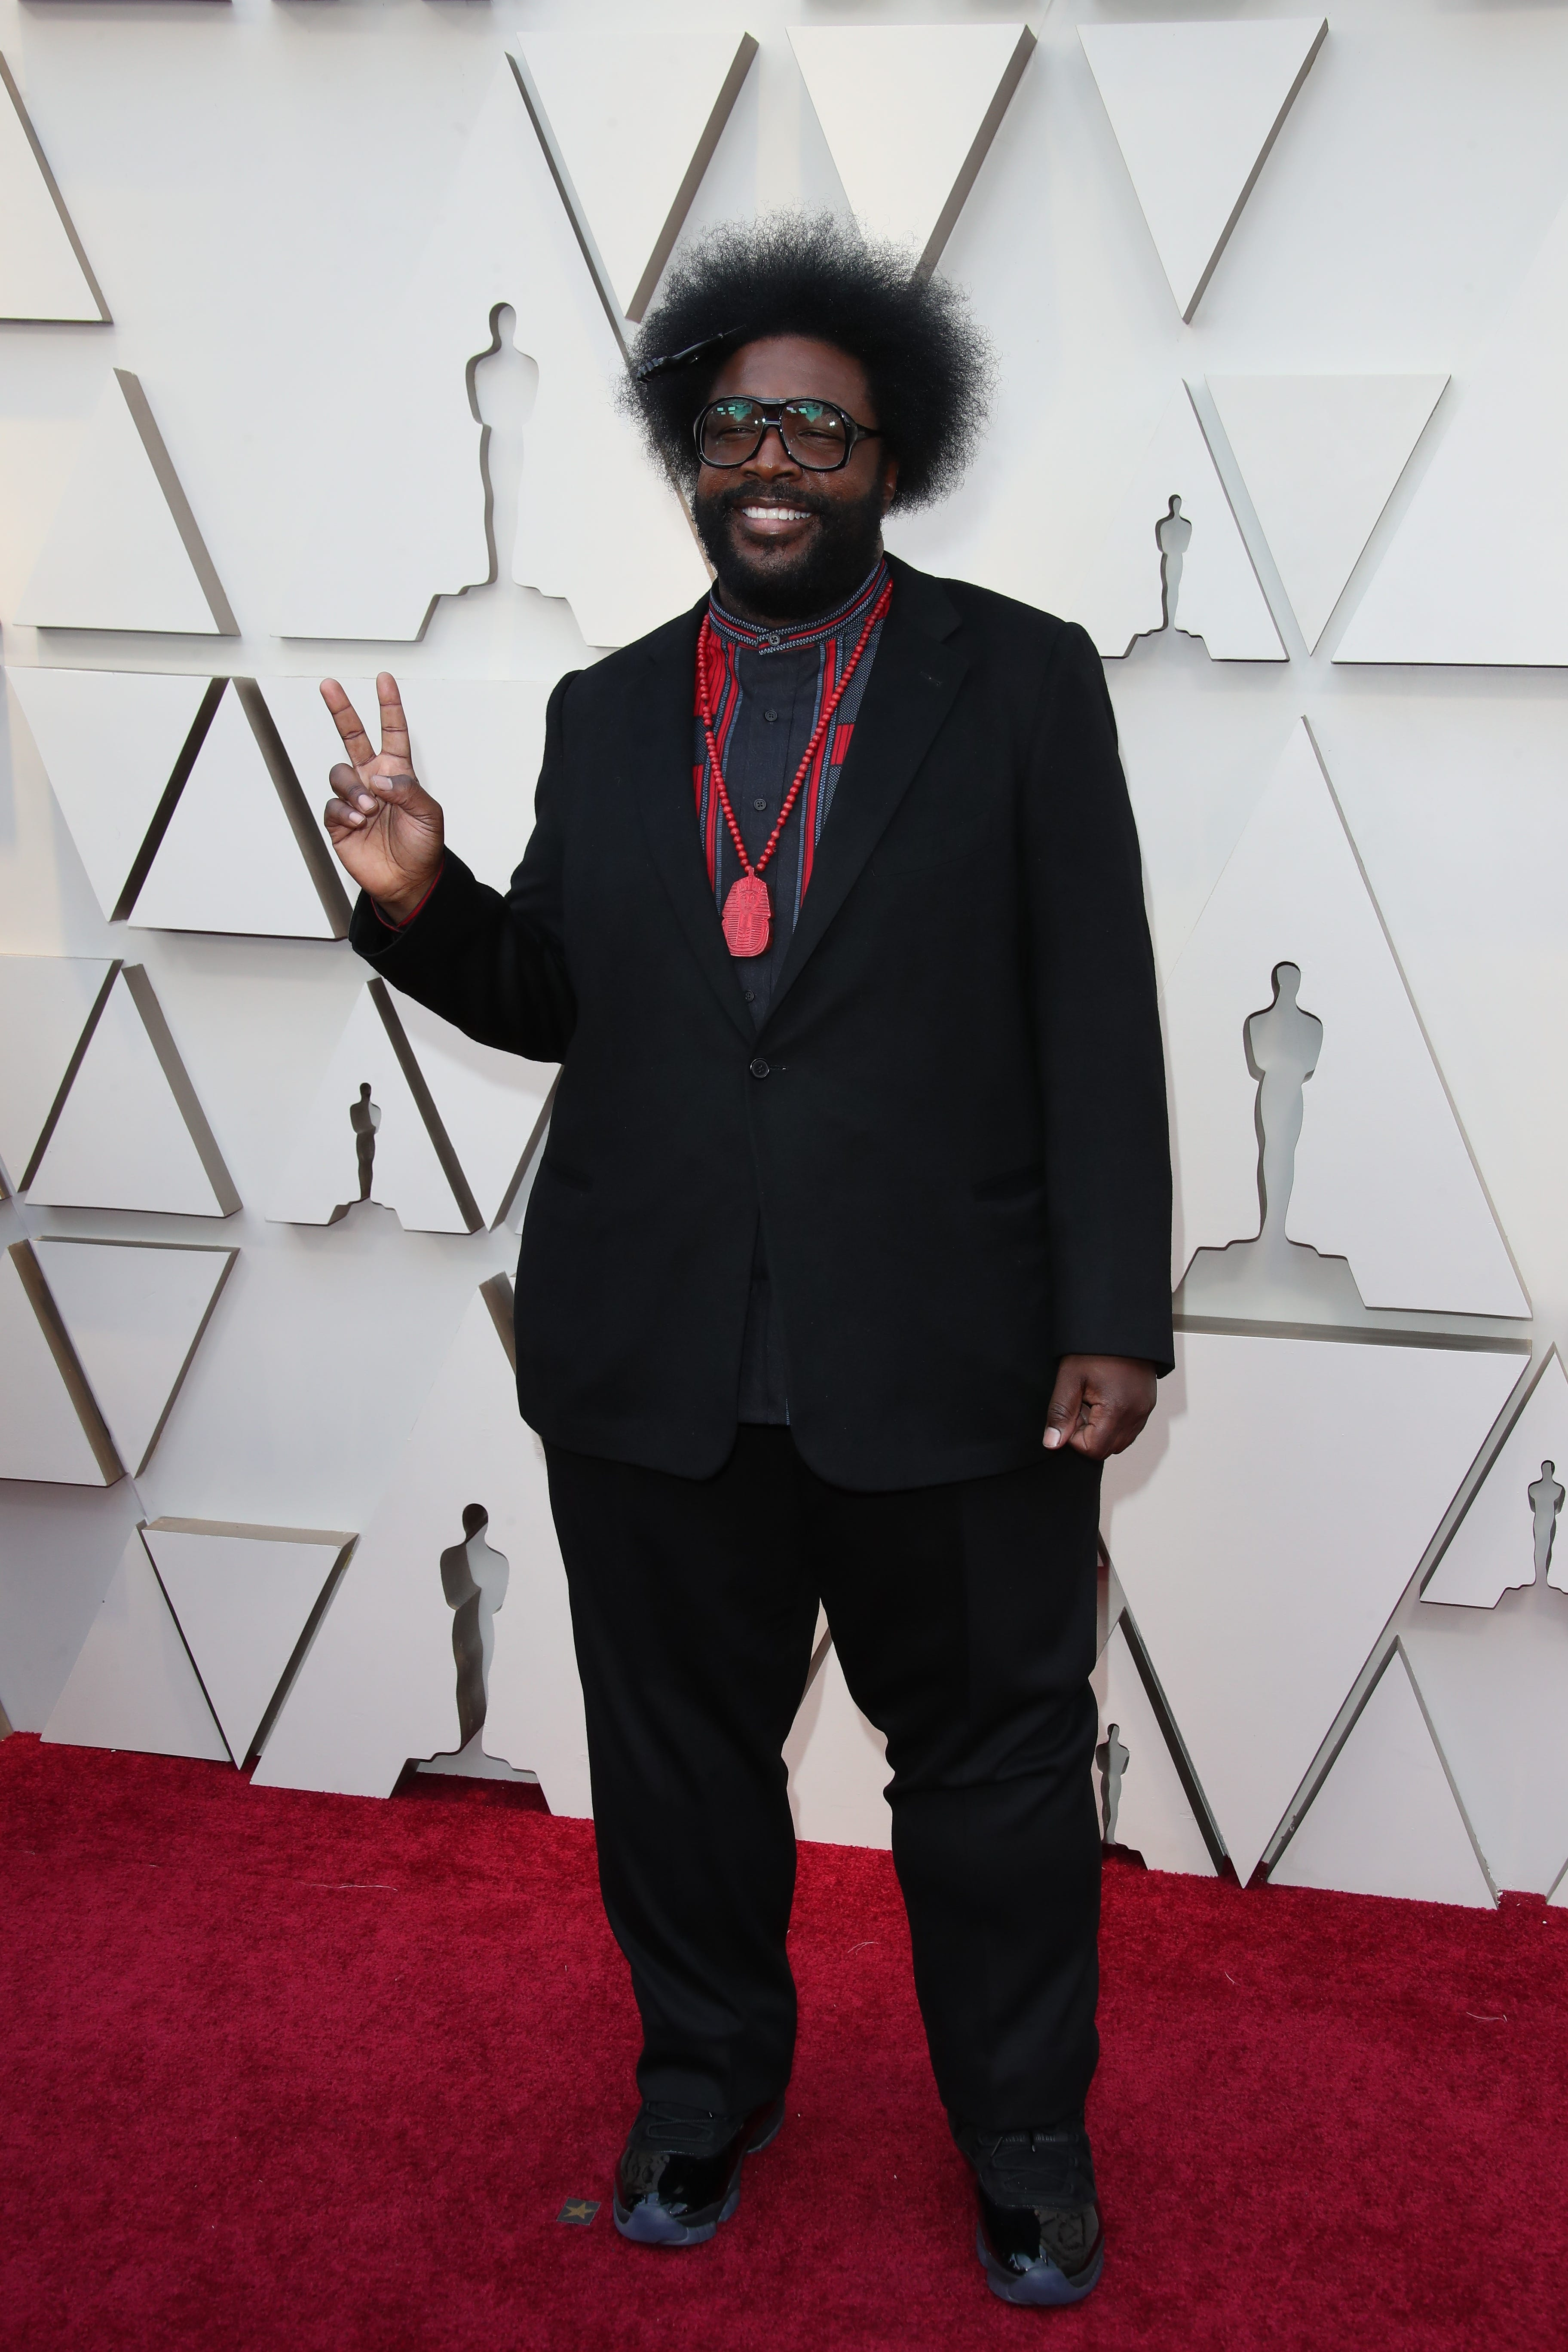 February 24, 2019; Los Angeles, CA, USA; Questlove arrives at the 91st Academy Awards at the Dolby Theatre. Mandatory Credit: Dan MacMedan-USA TODAY NETWORK (Via OlyDrop)